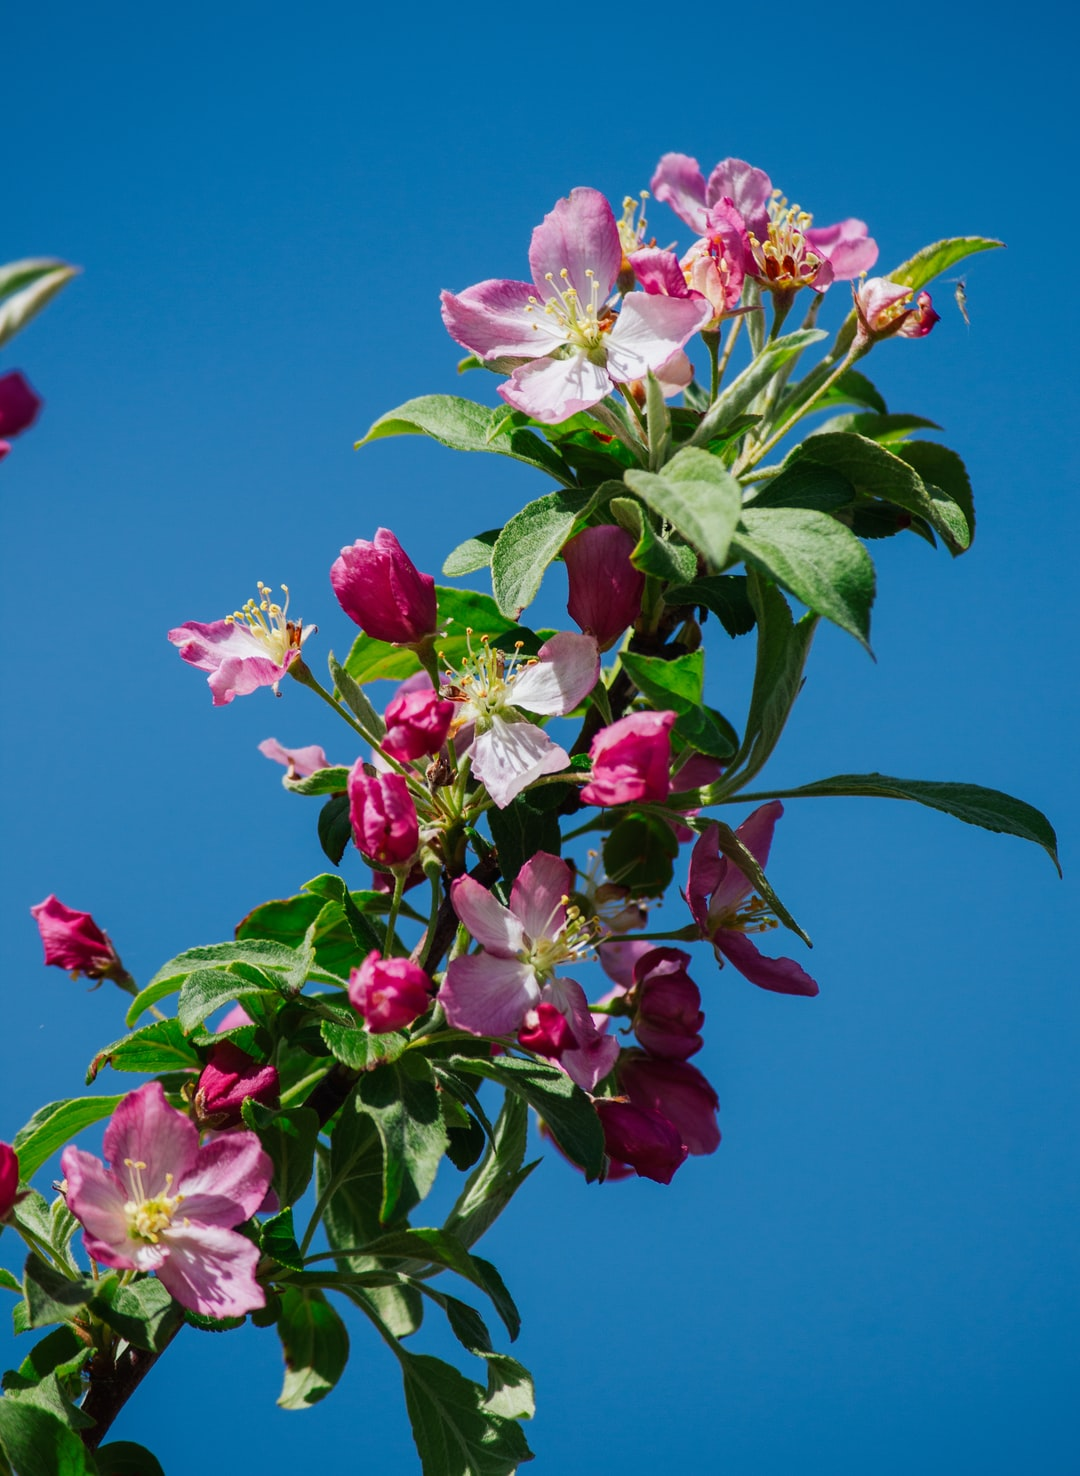 Pink crabapple blossoms against a blue sky in the springtime